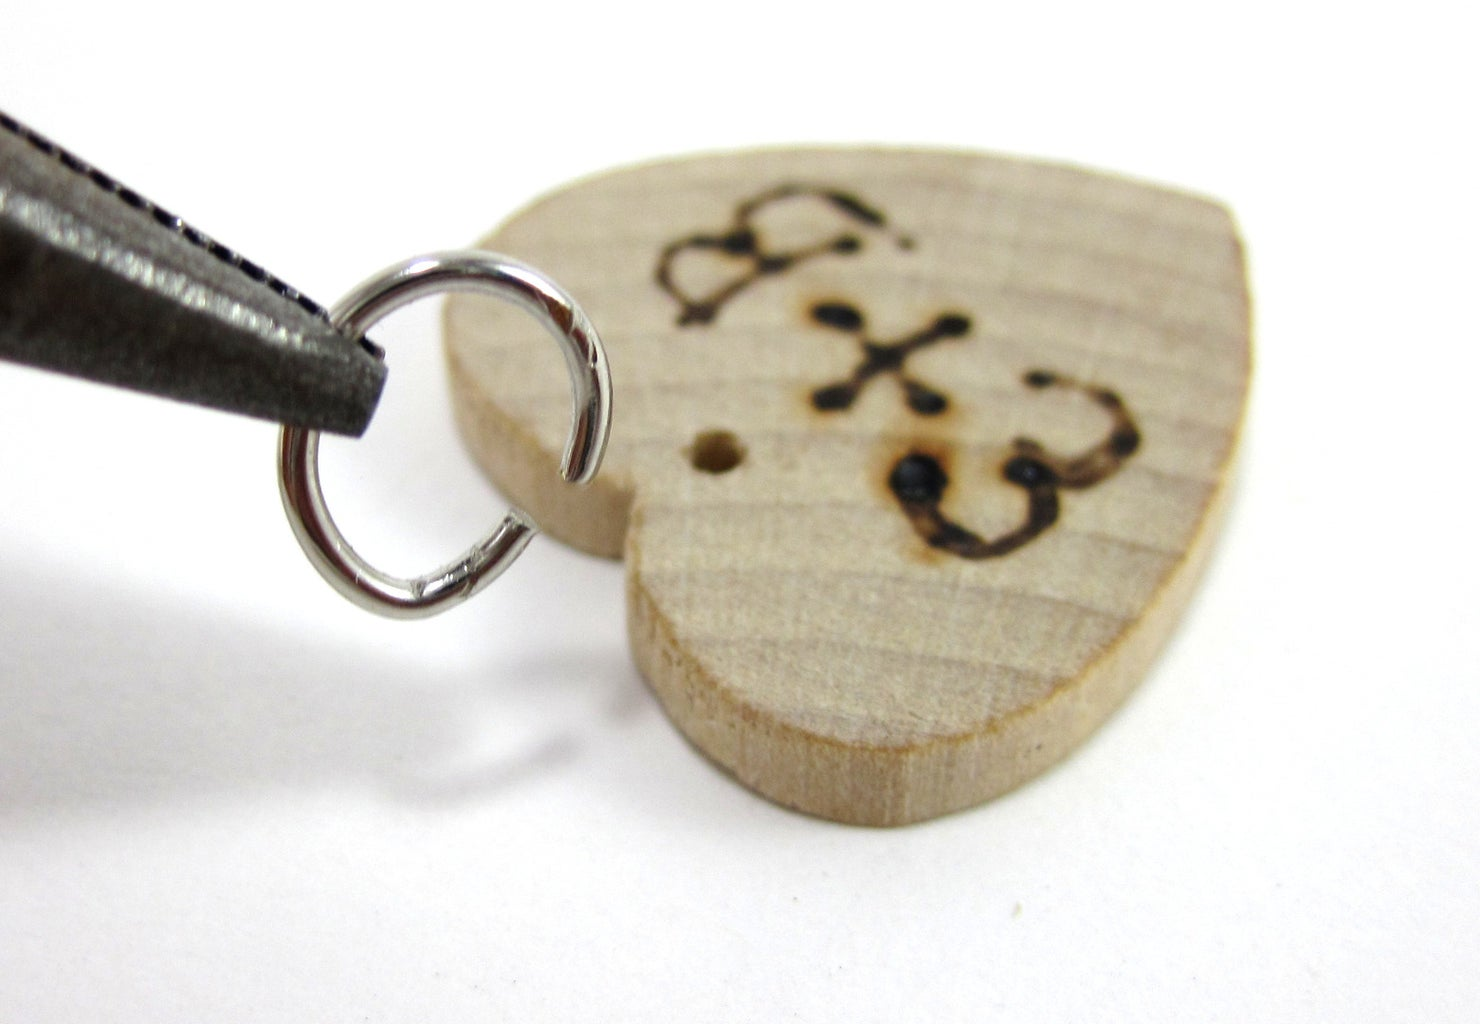 Attach Jump Rings to Hearts